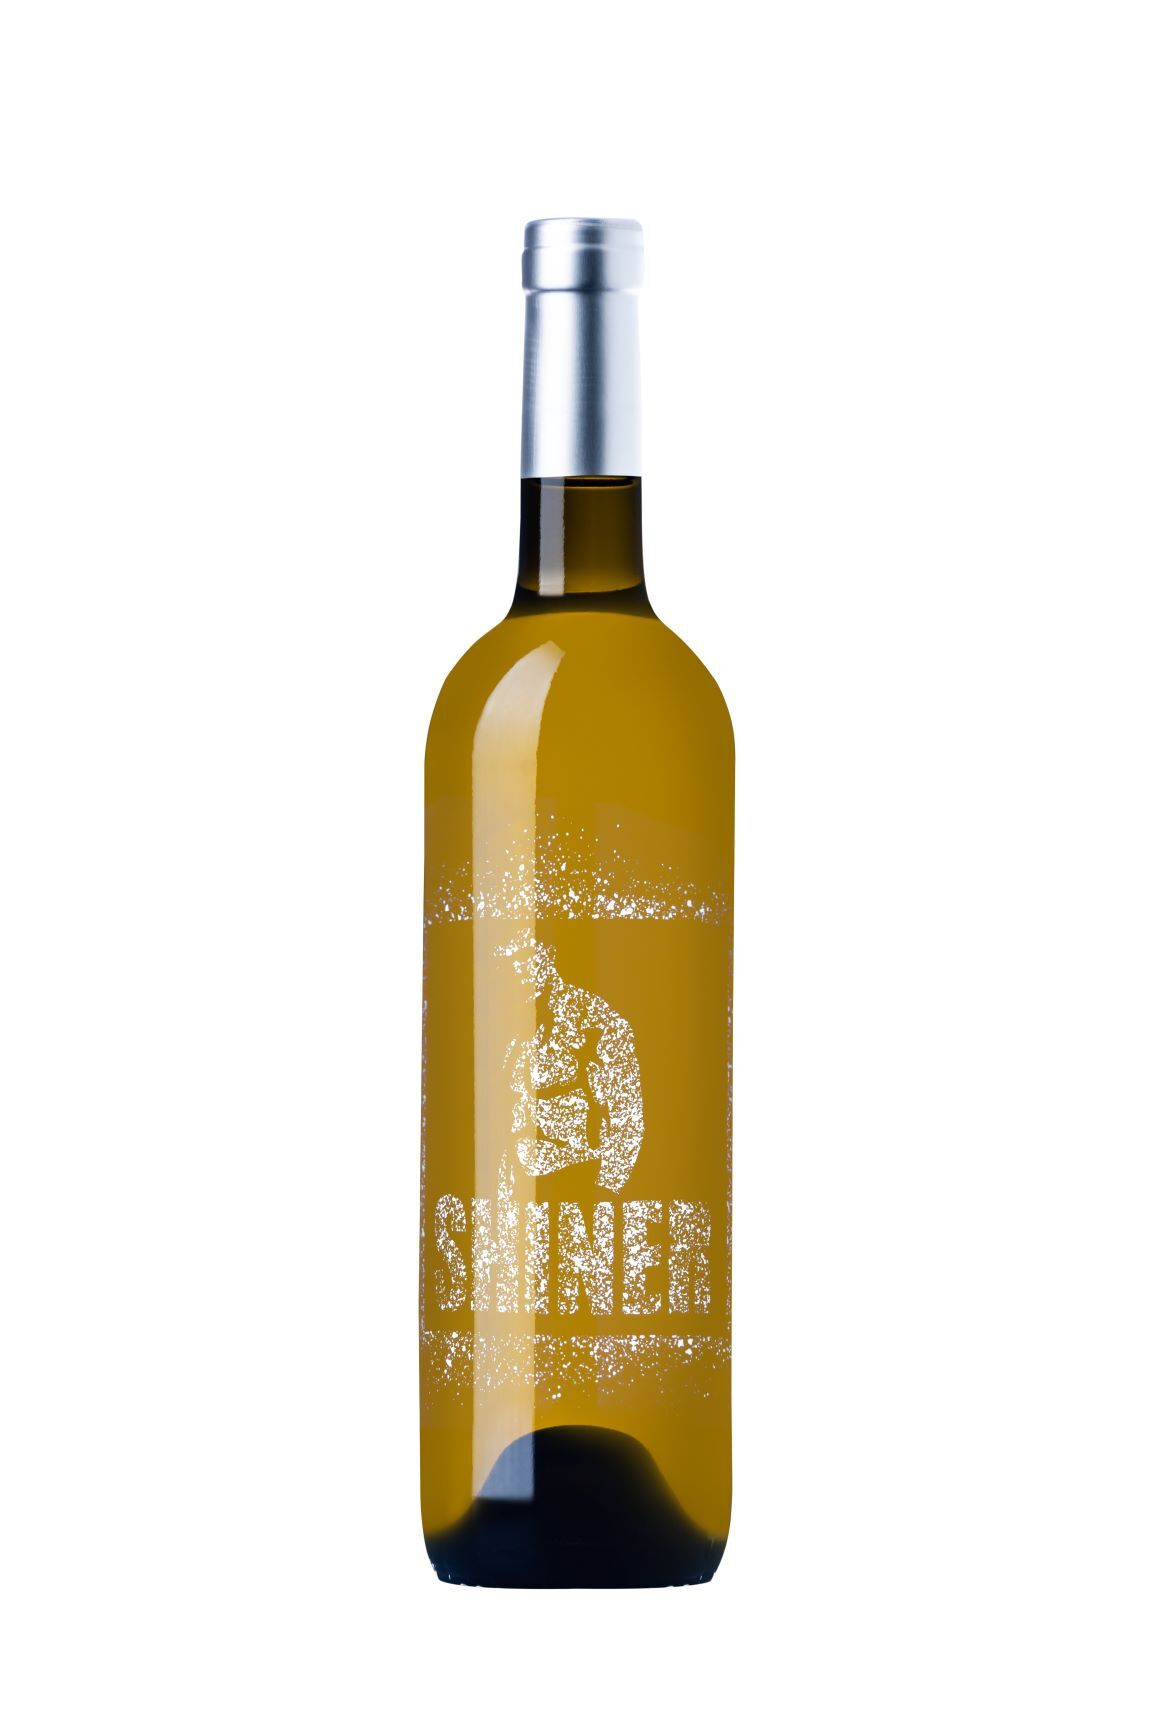 The Shiner paserene buy wine online south africa